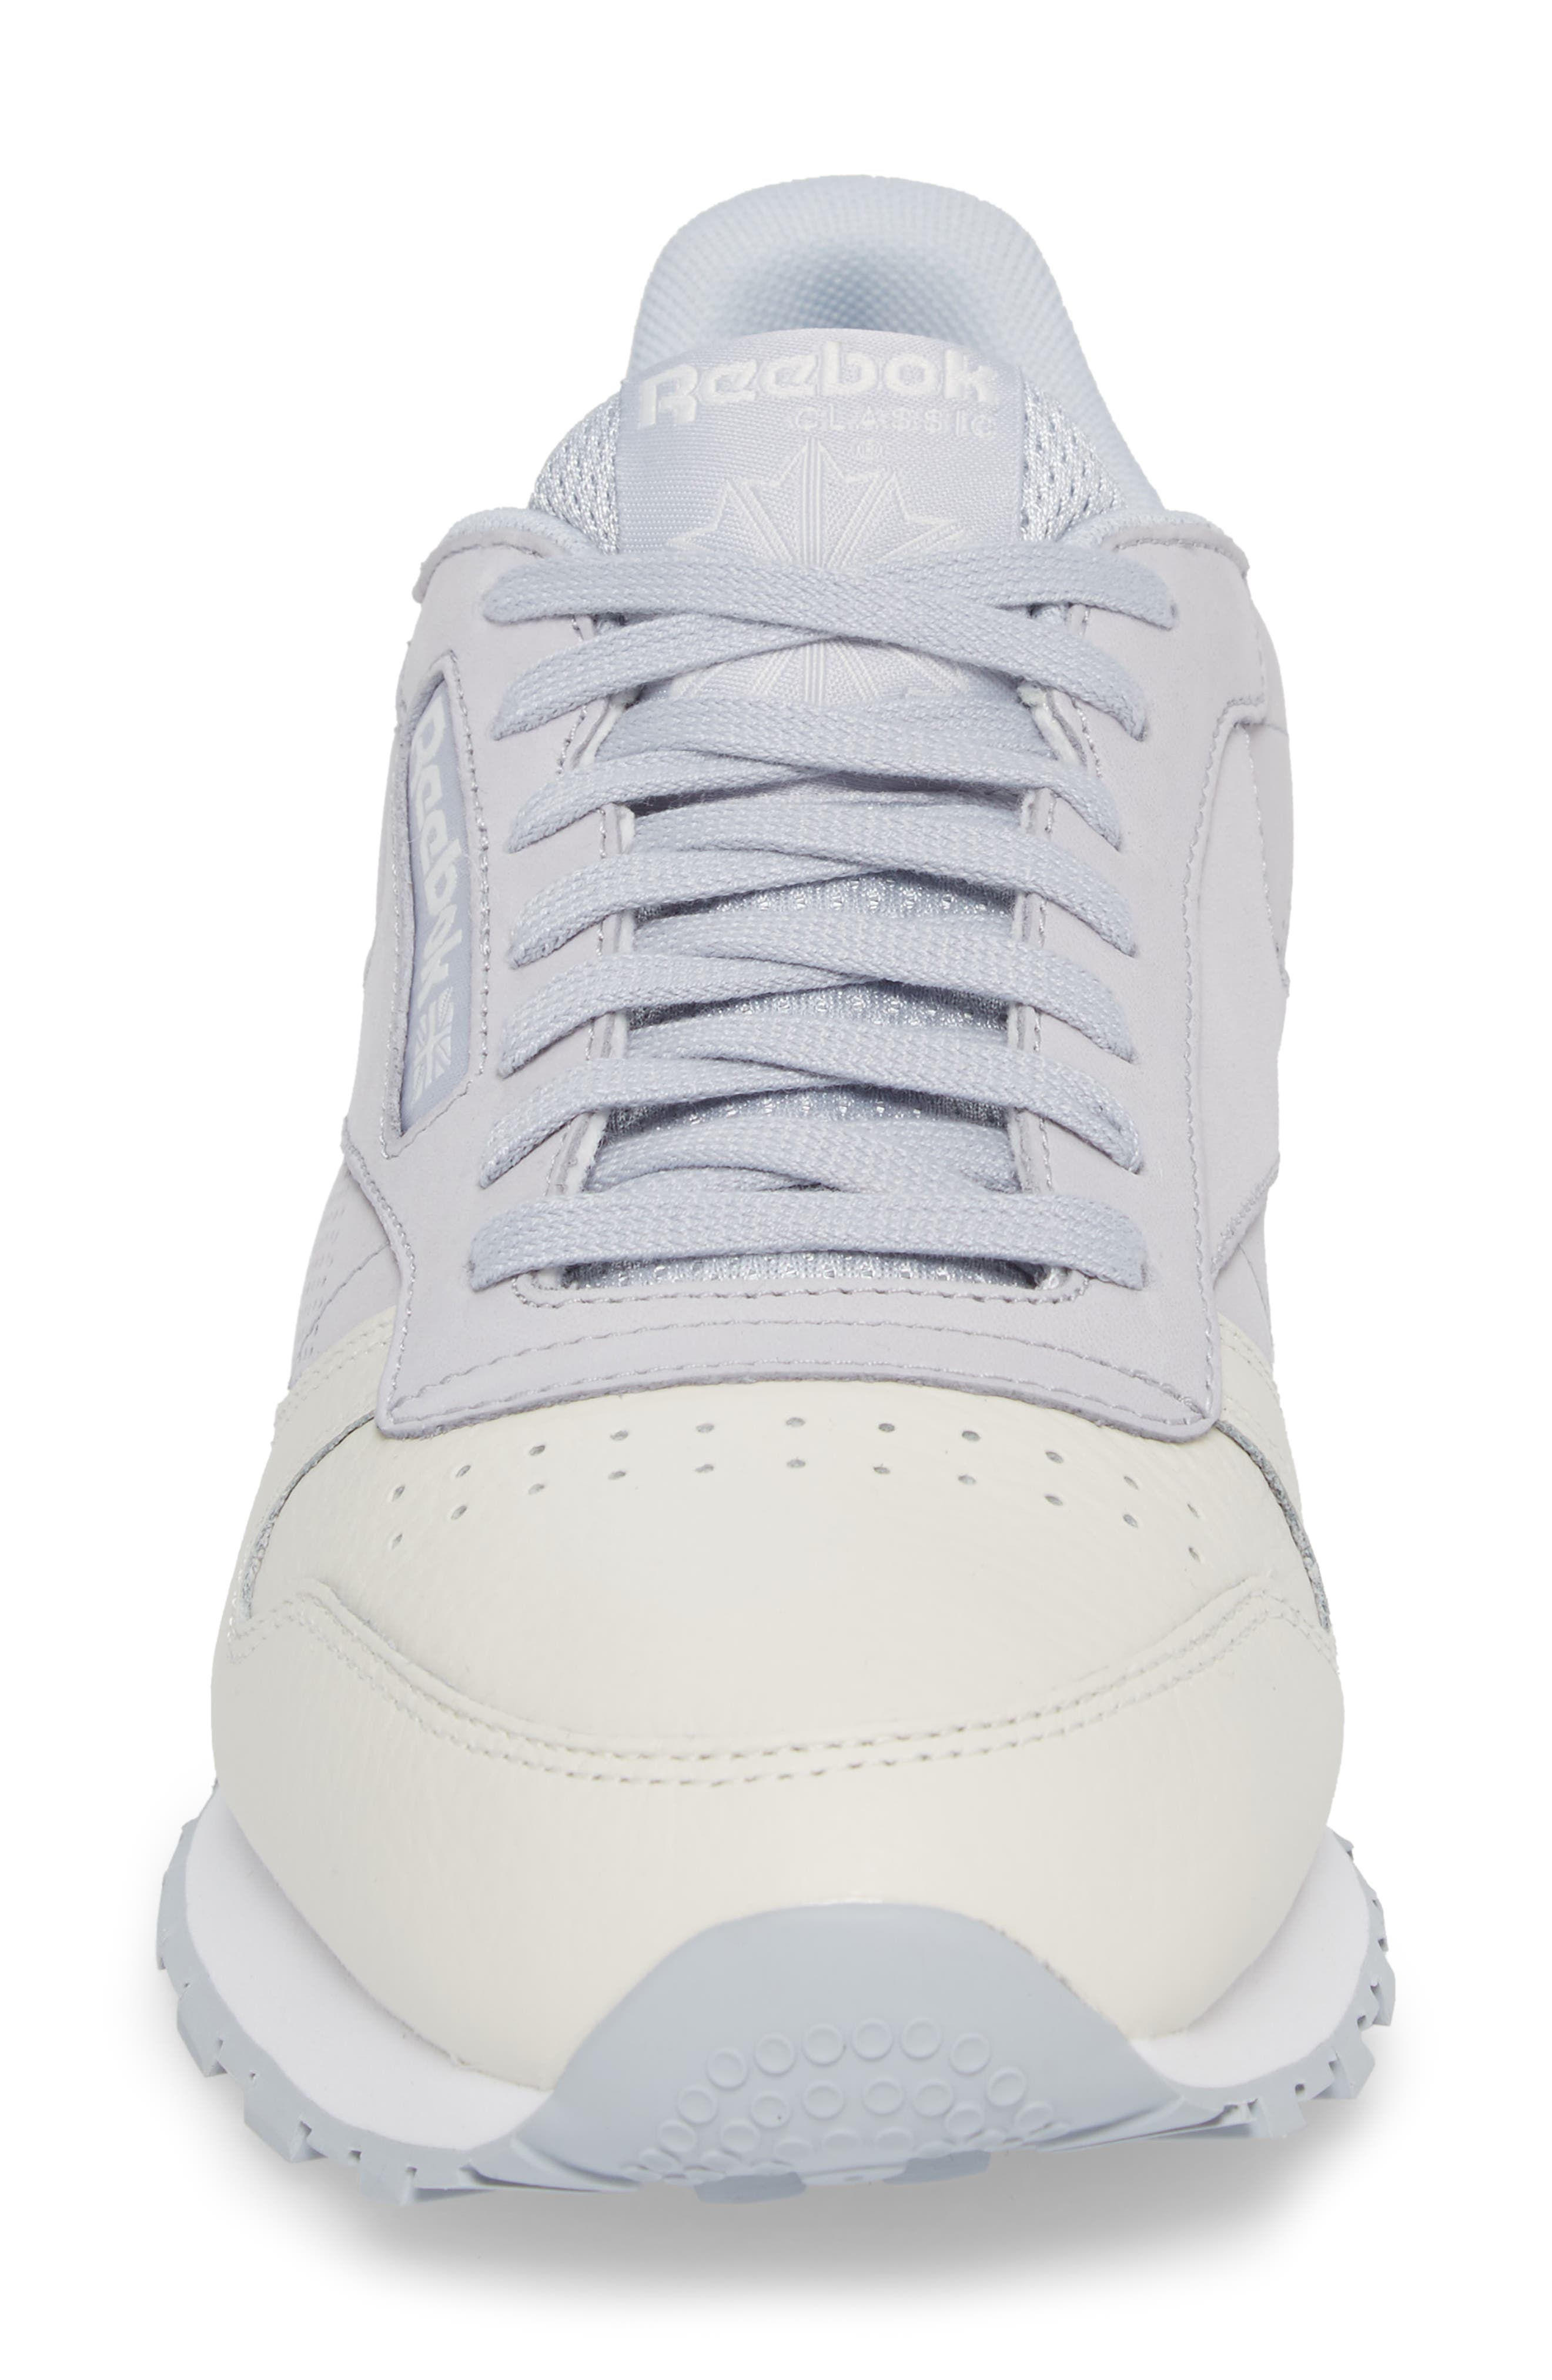 Classic Leather UE Sneaker,                             Alternate thumbnail 4, color,                             020